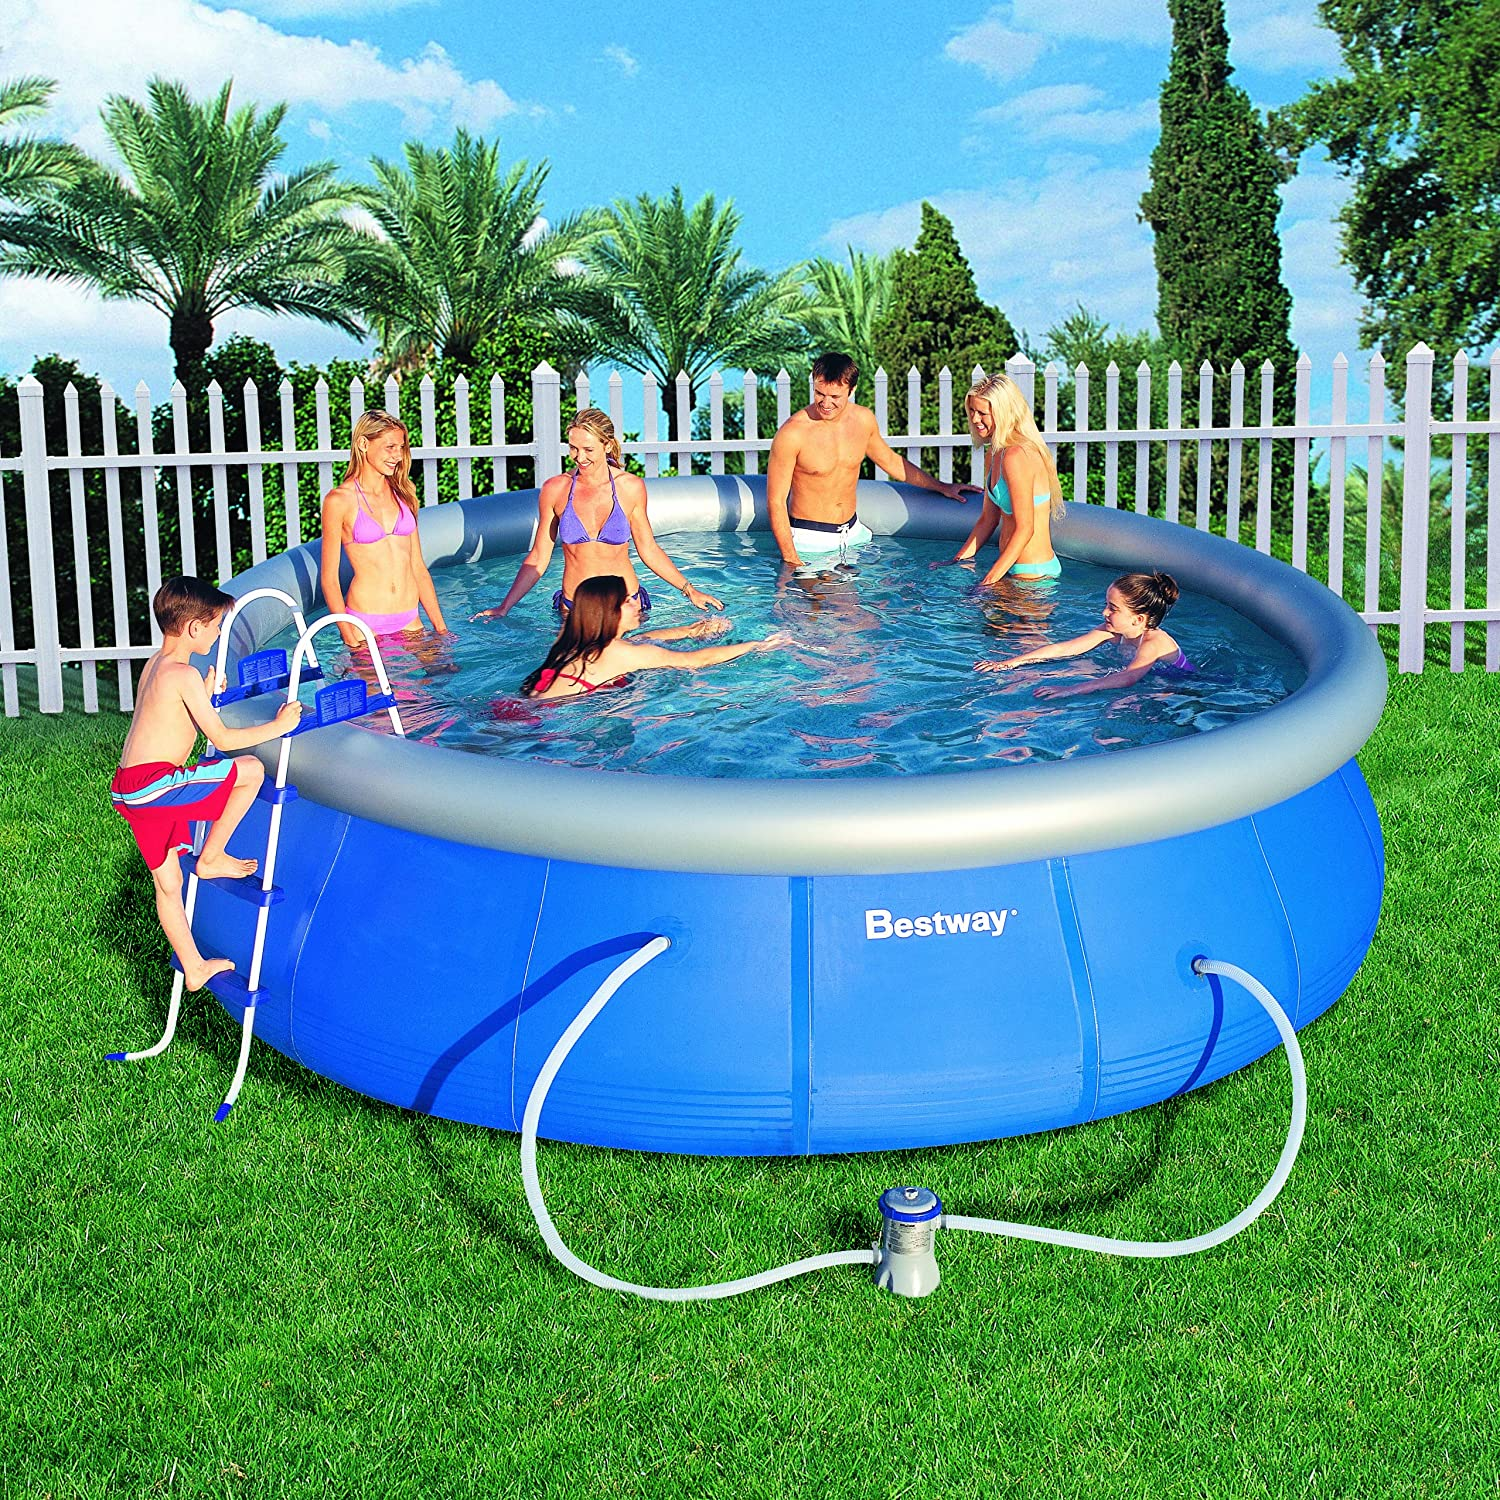 Best above ground pool reviews 2017 ultimate buying guide for Best above ground pool reviews